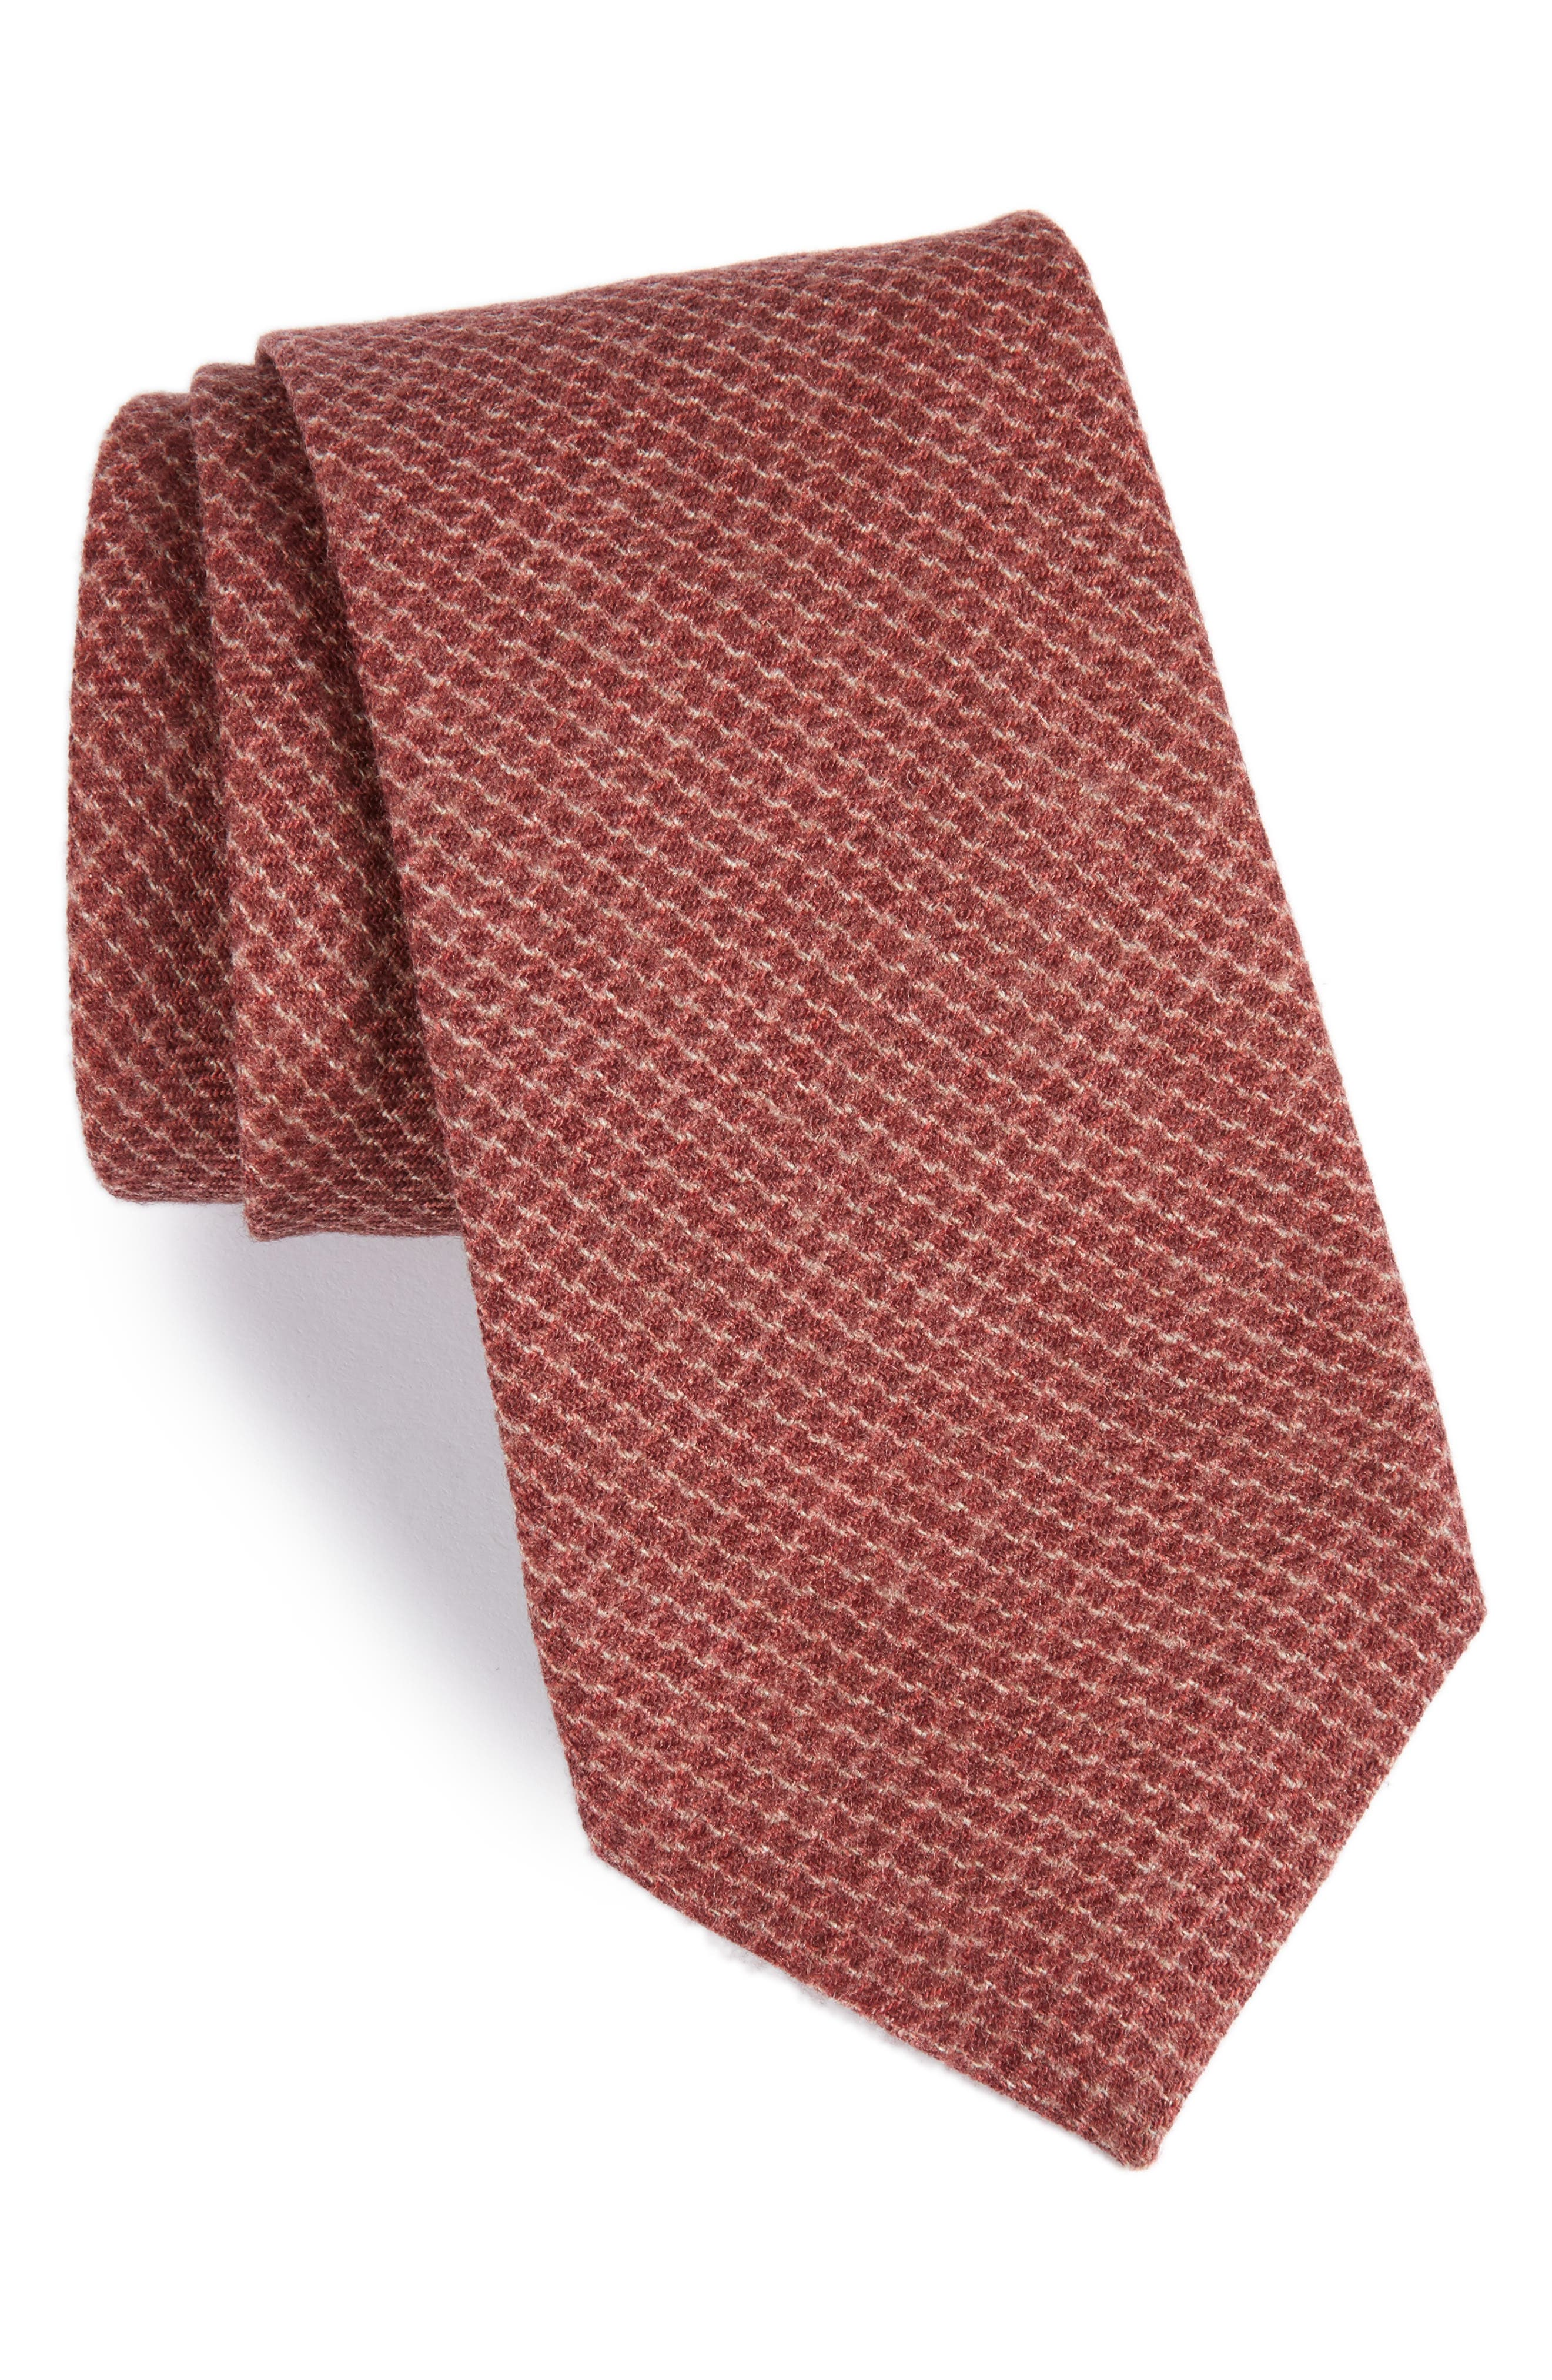 Alternate Image 1 Selected - Michael Bastian Geometric Wool Tie